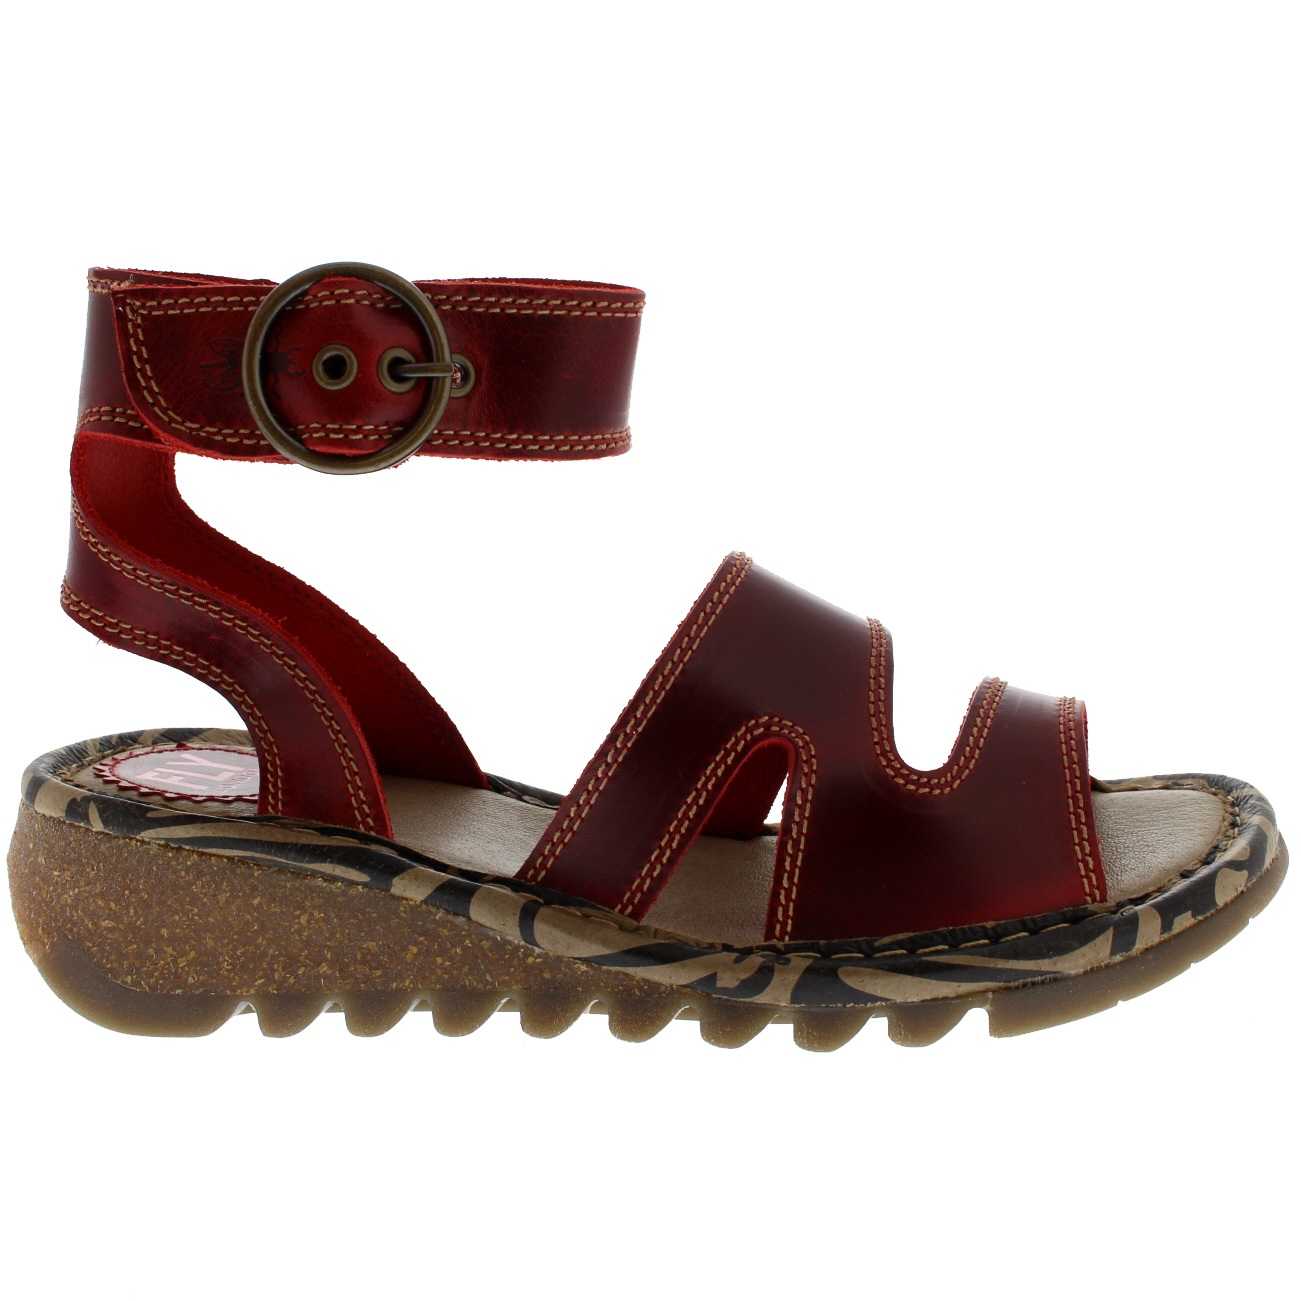 Womens-Fly-London-Tily-Leather-Ankle-Strap-Roman-Open-Toe-Holiday-Sandals-UK-3-9